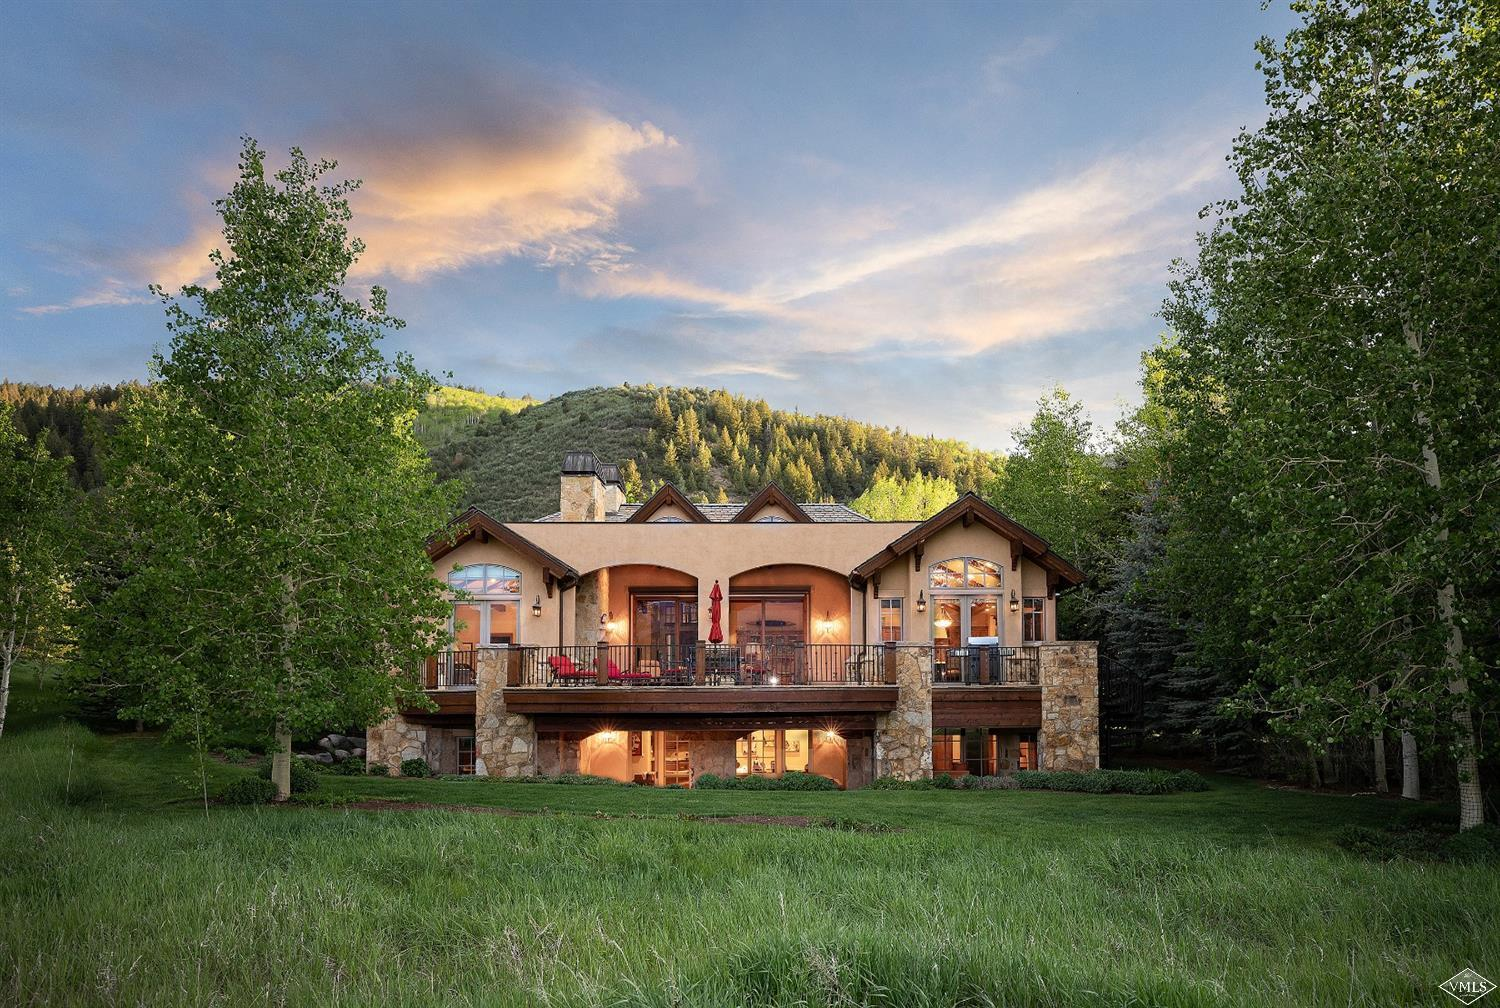 Invite the outdoors in with sliding glass walls opening to majestic mountain vistas over the 5th fairway of the Country Club of the Rockies golf course. Featuring an exquisite custom bar, bunk room, apartment, walkout lower level and a hidden safe or gun room.